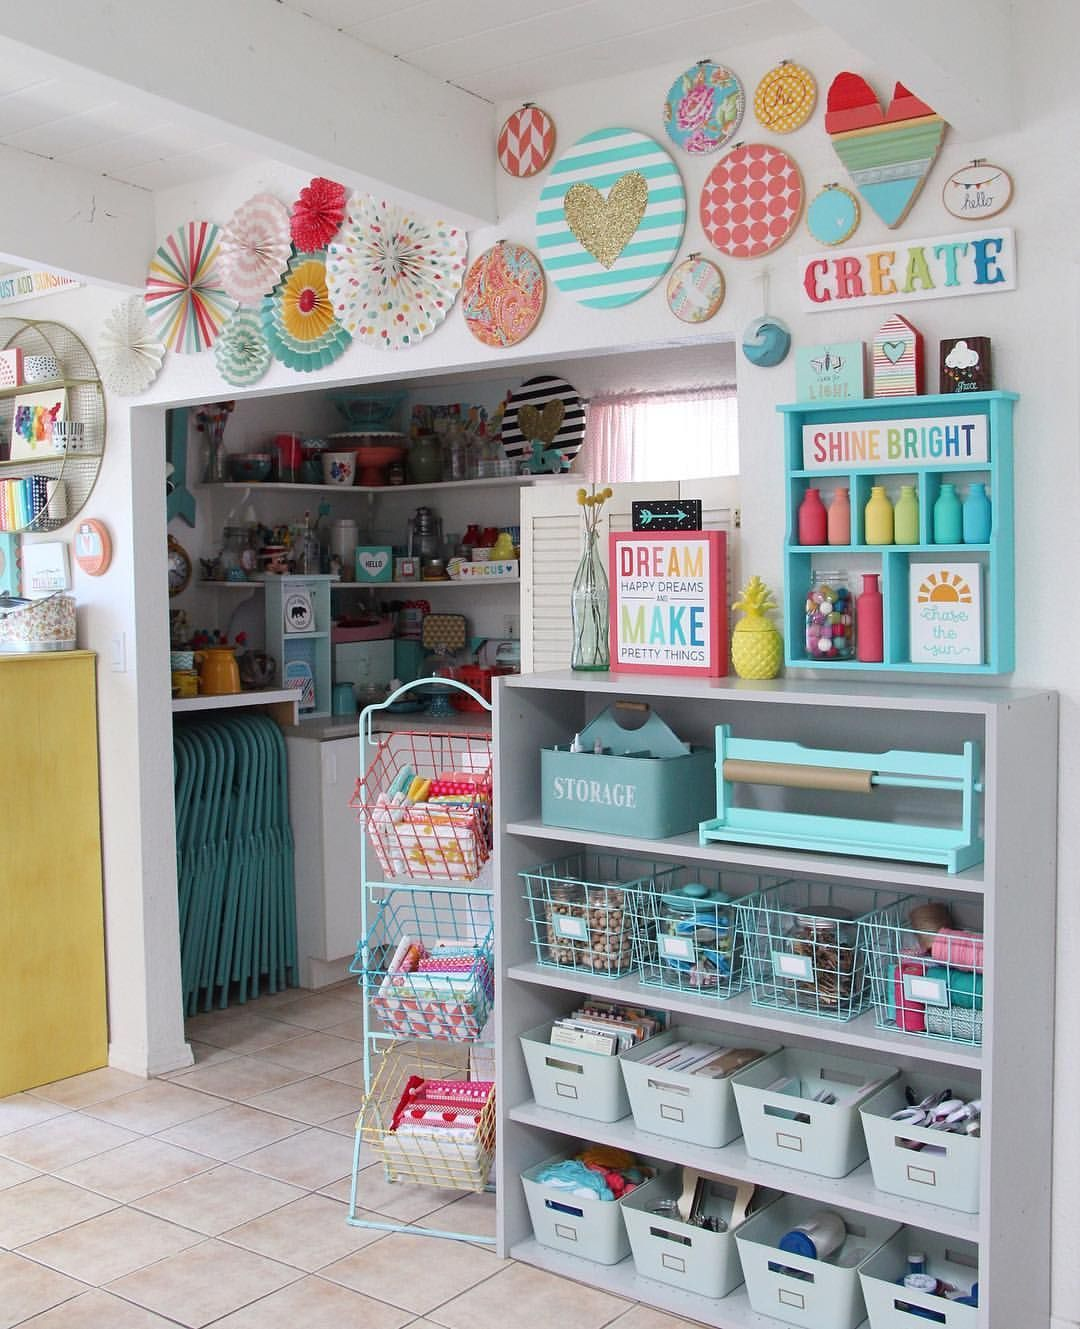 """Just Add Sunshine--Katie Sabin on Instagram: """"Made some good progress in my craft room today and oooh I'm loving the updates!! #thegreatcraftroomcleanup #katiesunshinescraftroom"""" -  nähzimmer  - #add #craft #craftrooms #craftstorage #craftstudios #Good #instagram #katie #katiesunshinescraftroom #loving #oooh #progress #Room #sabin #sunshine #SunshineKatie #thegreatcraftroomcleanup #today #updates"""